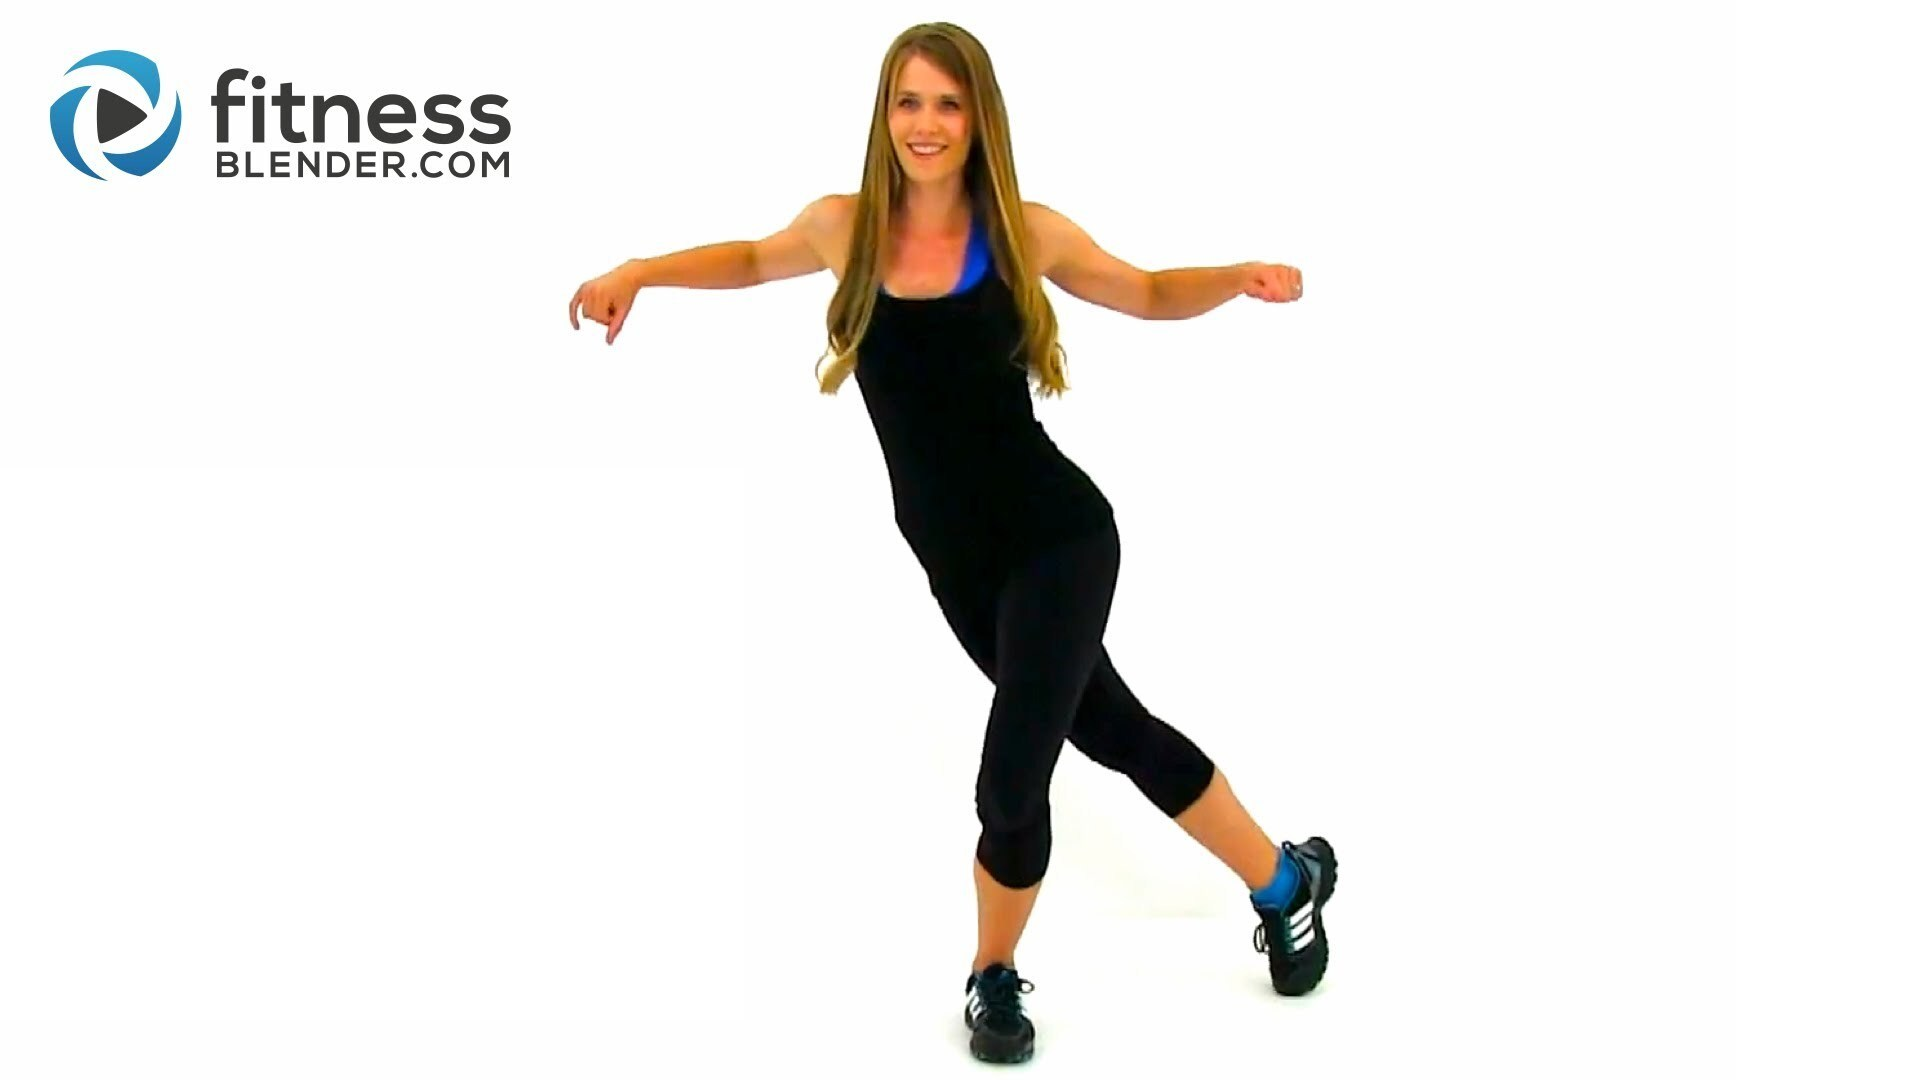 Easy on the Knees Kickboxing Blend - Low Impact Cardio Workout for Beginners